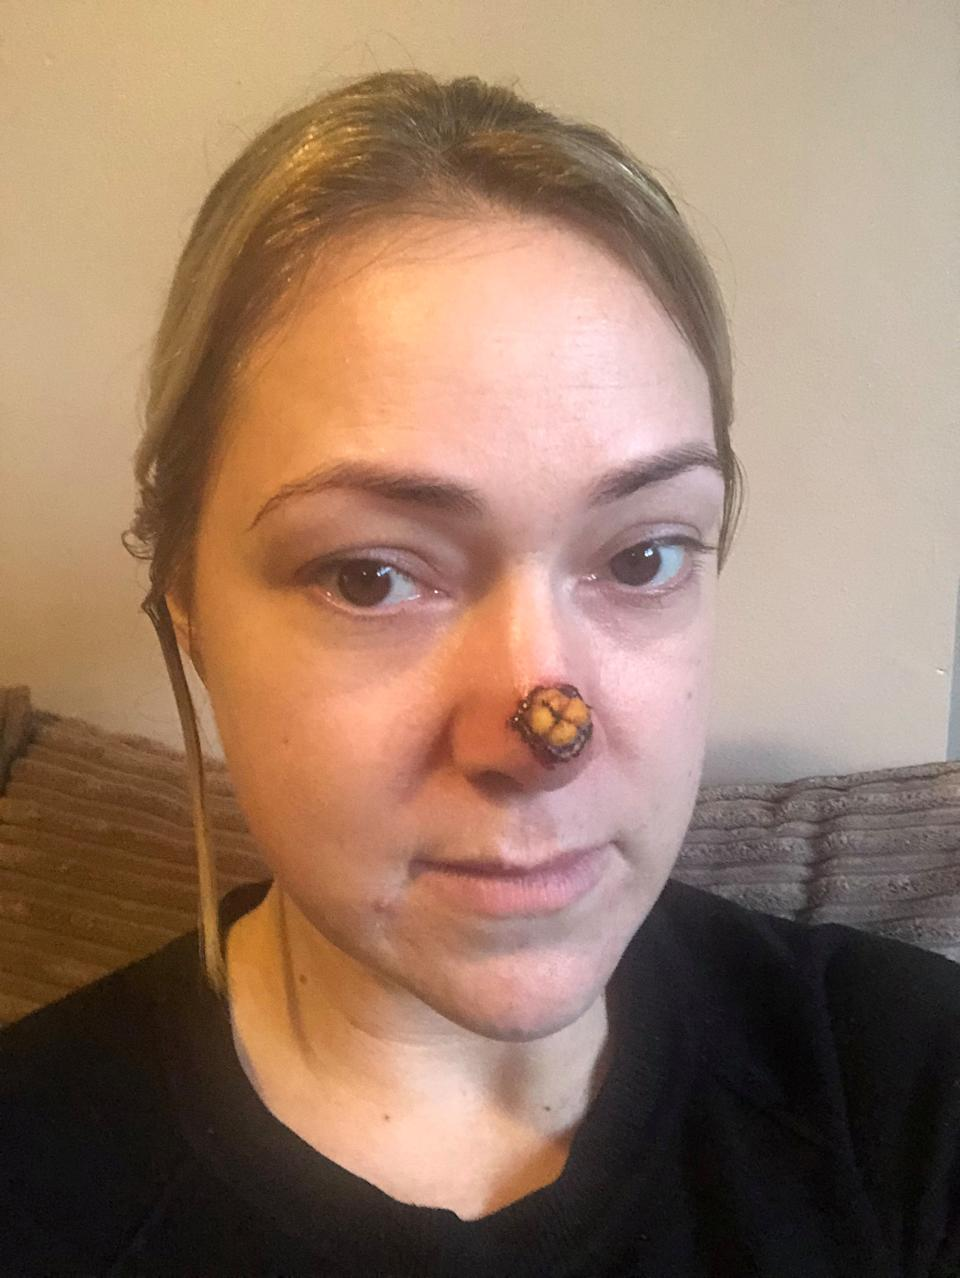 The mum was told if she didn't receive treatment she would have lost her nose within 10 years [Photo: SWNS]